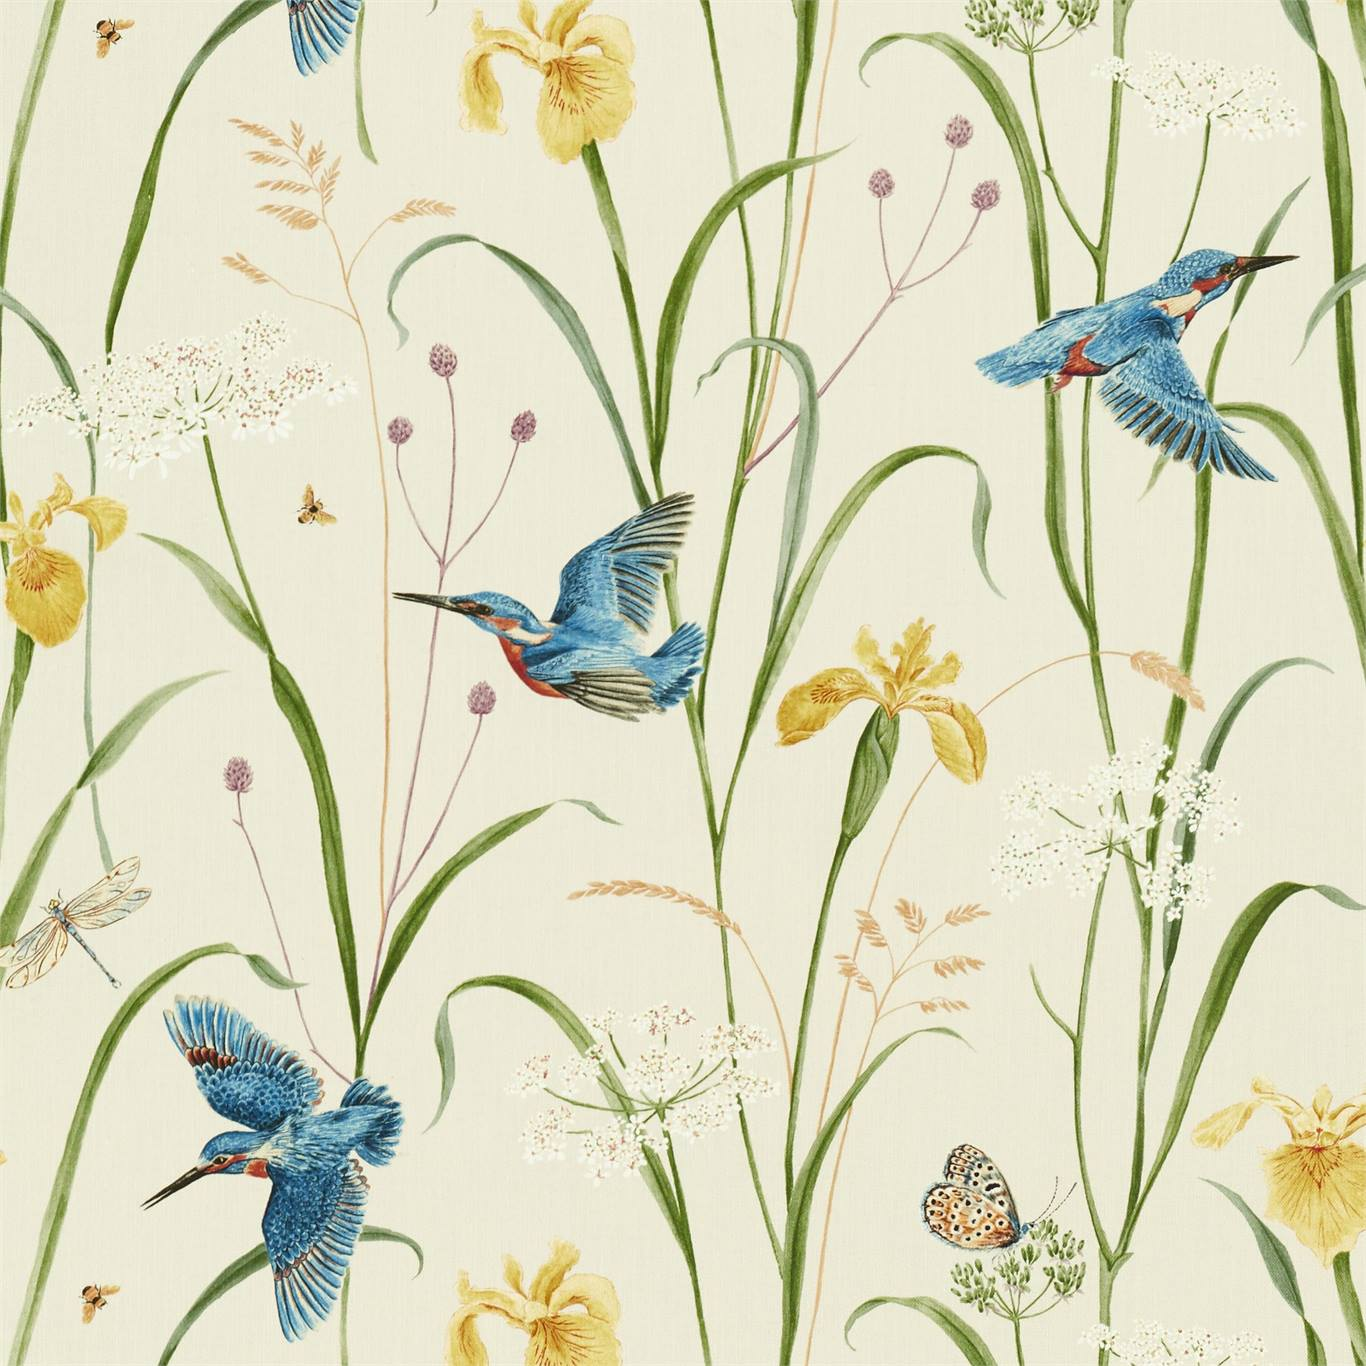 DNTF226732 Collection - National Trust Fabric